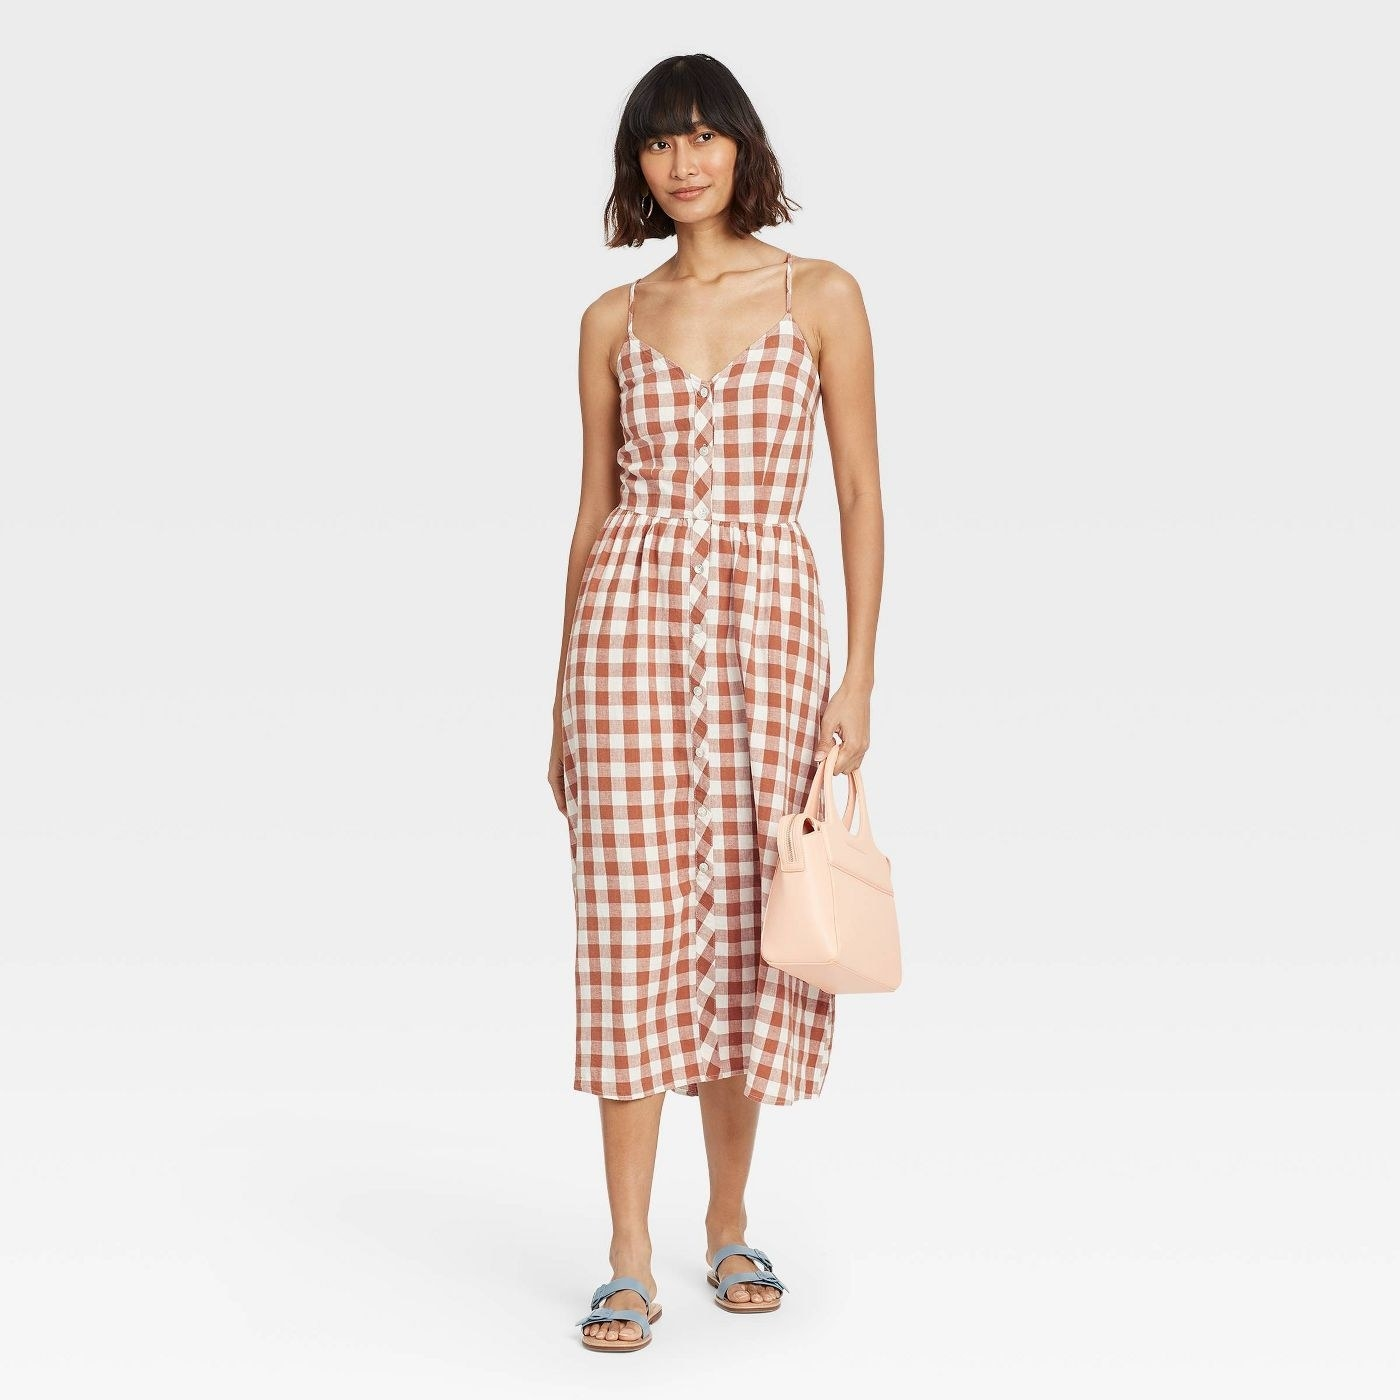 Model wearing midi dress with burnt orange and white checkers